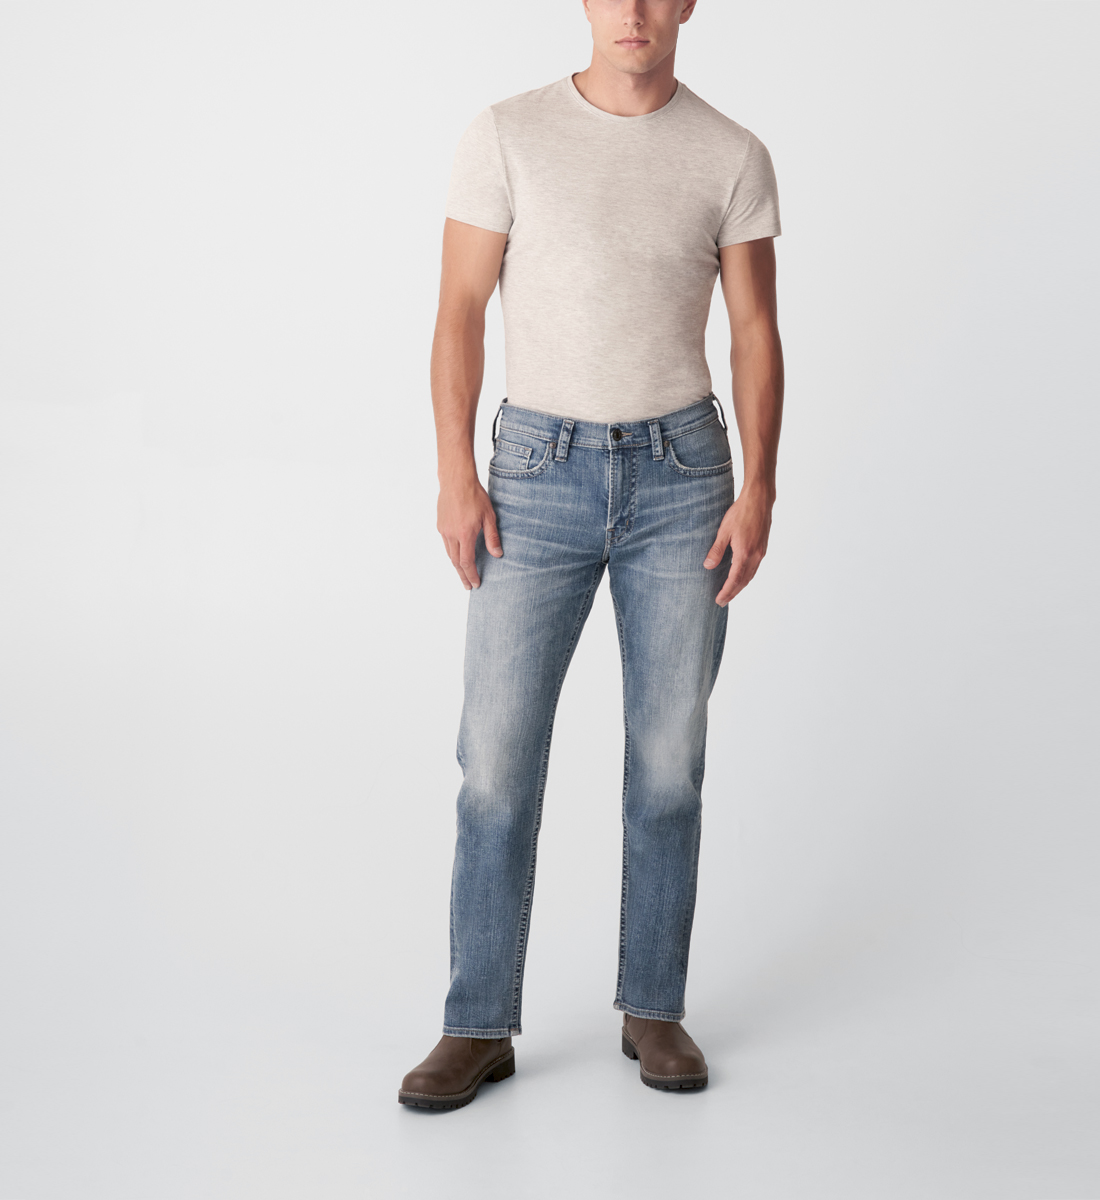 Silver Jeans Craig Easy Fit Bootcut Jeans